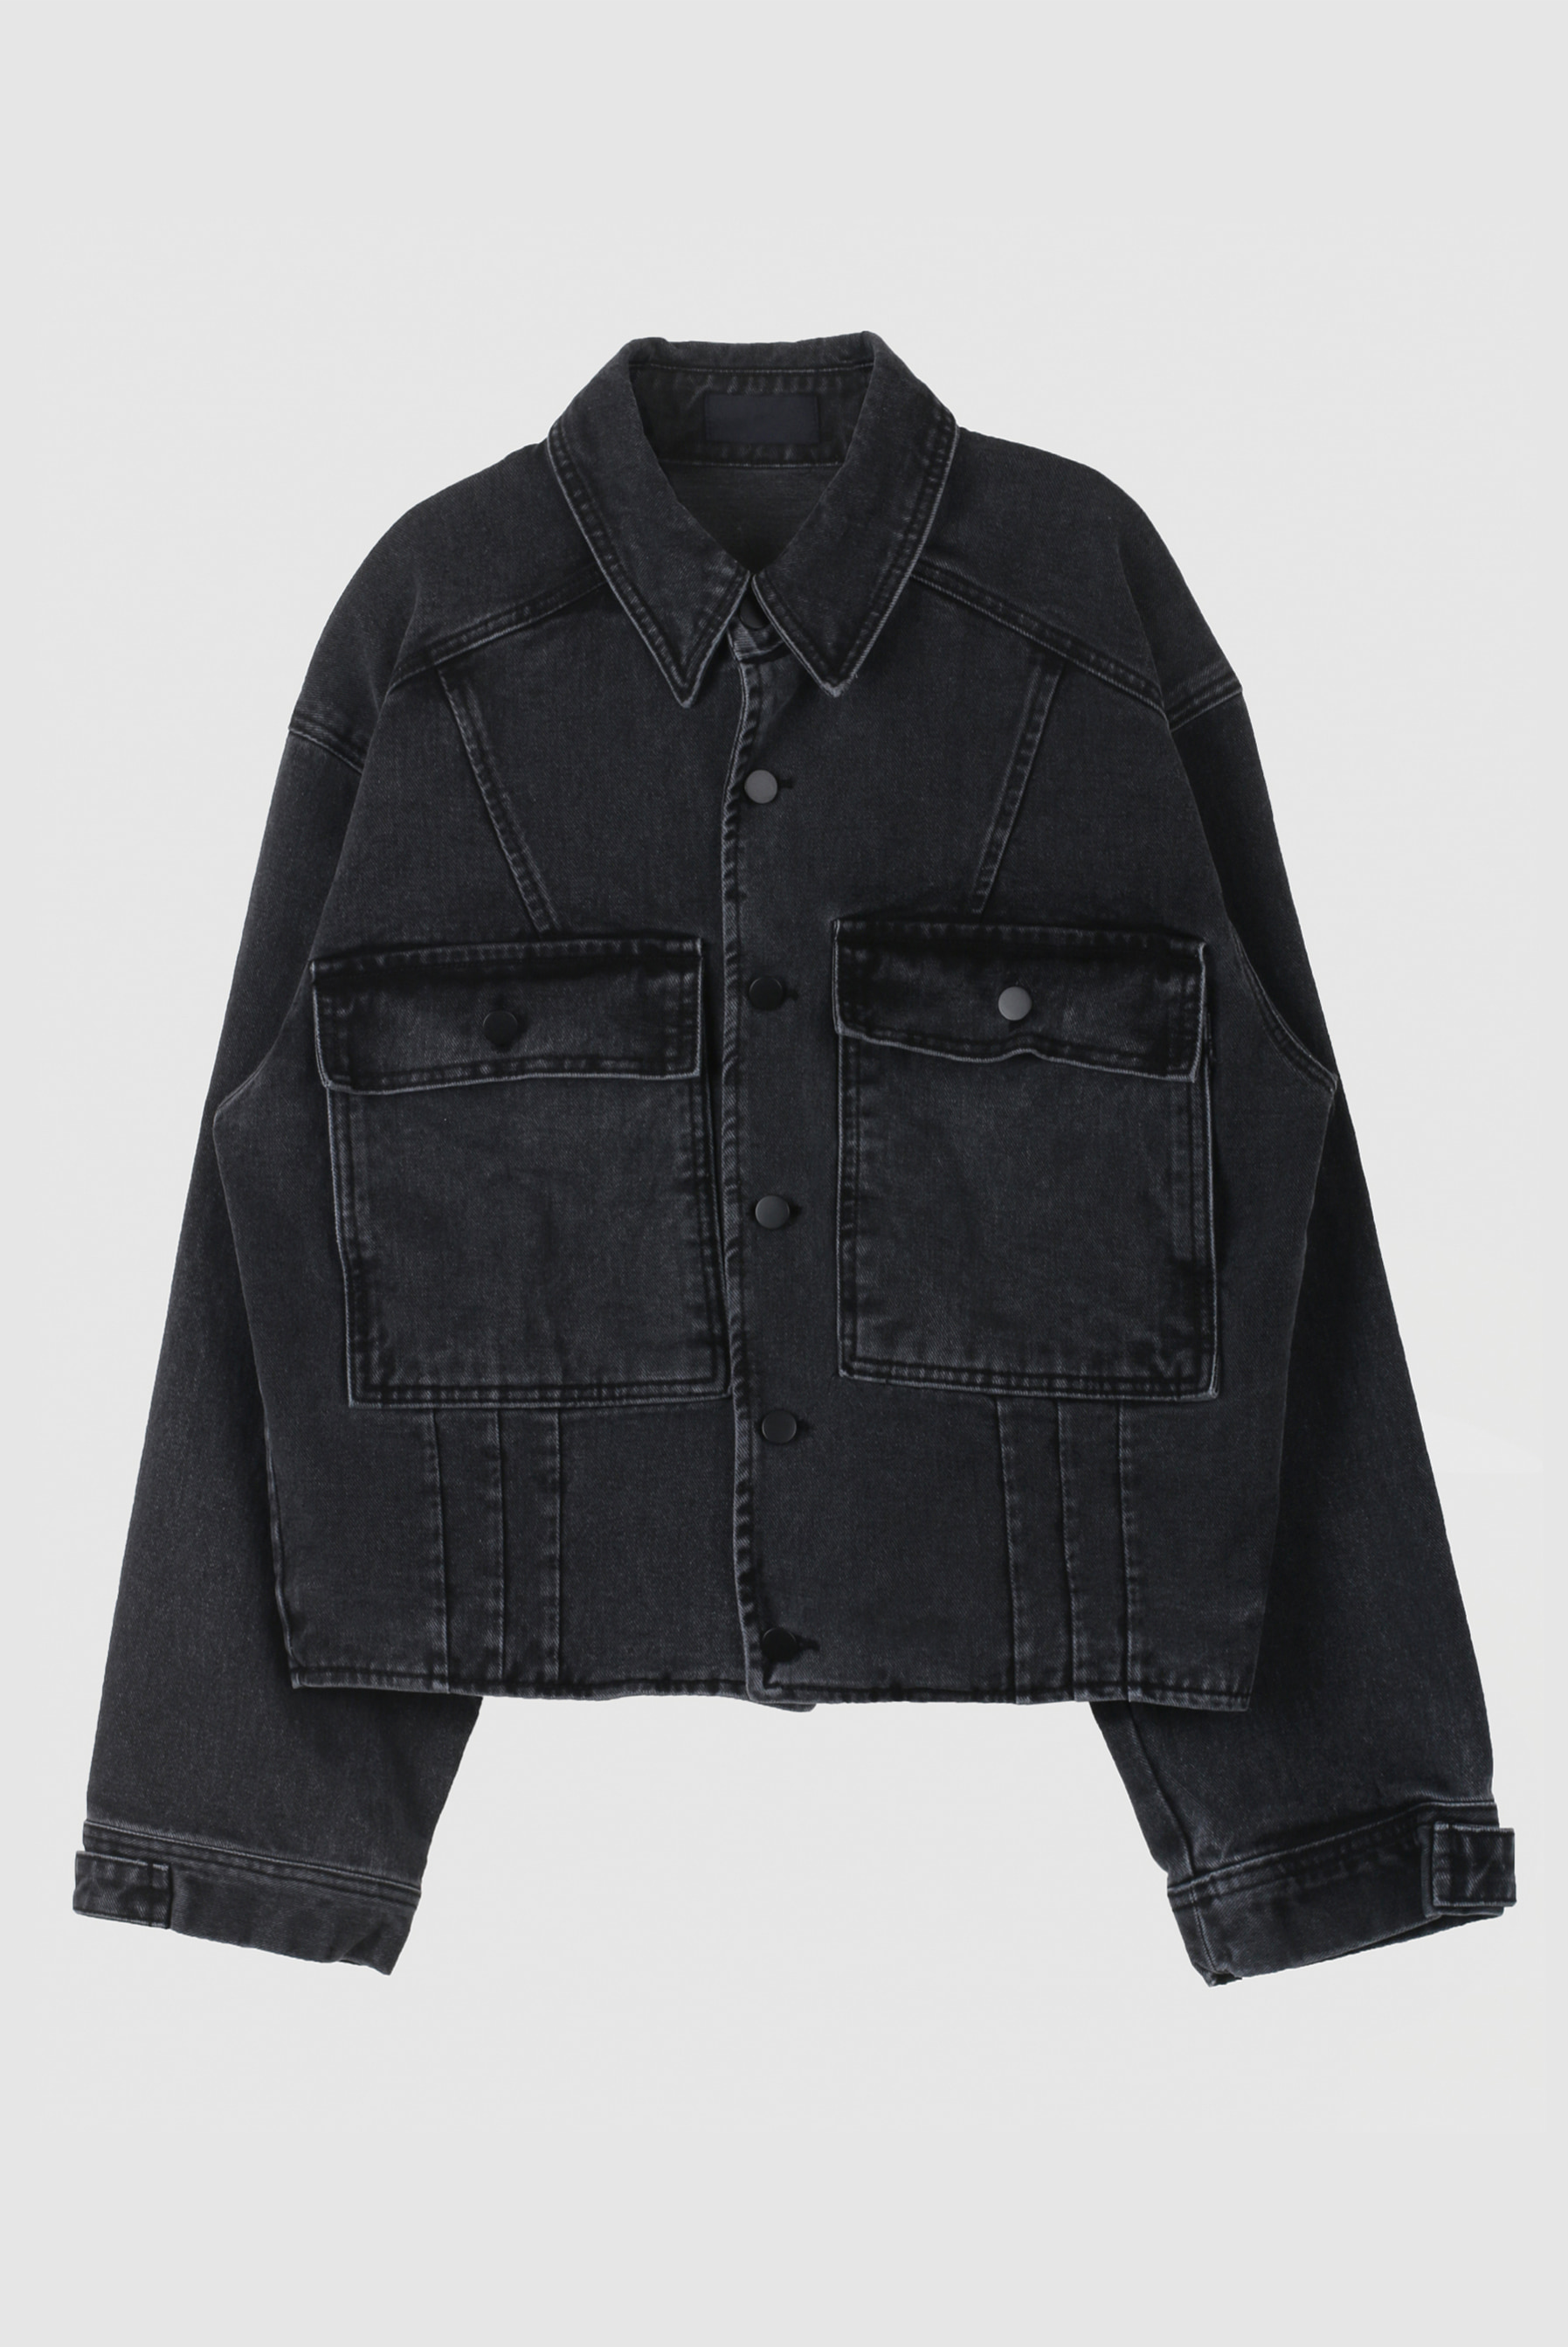 Track_Washing Black Denim_Jacket